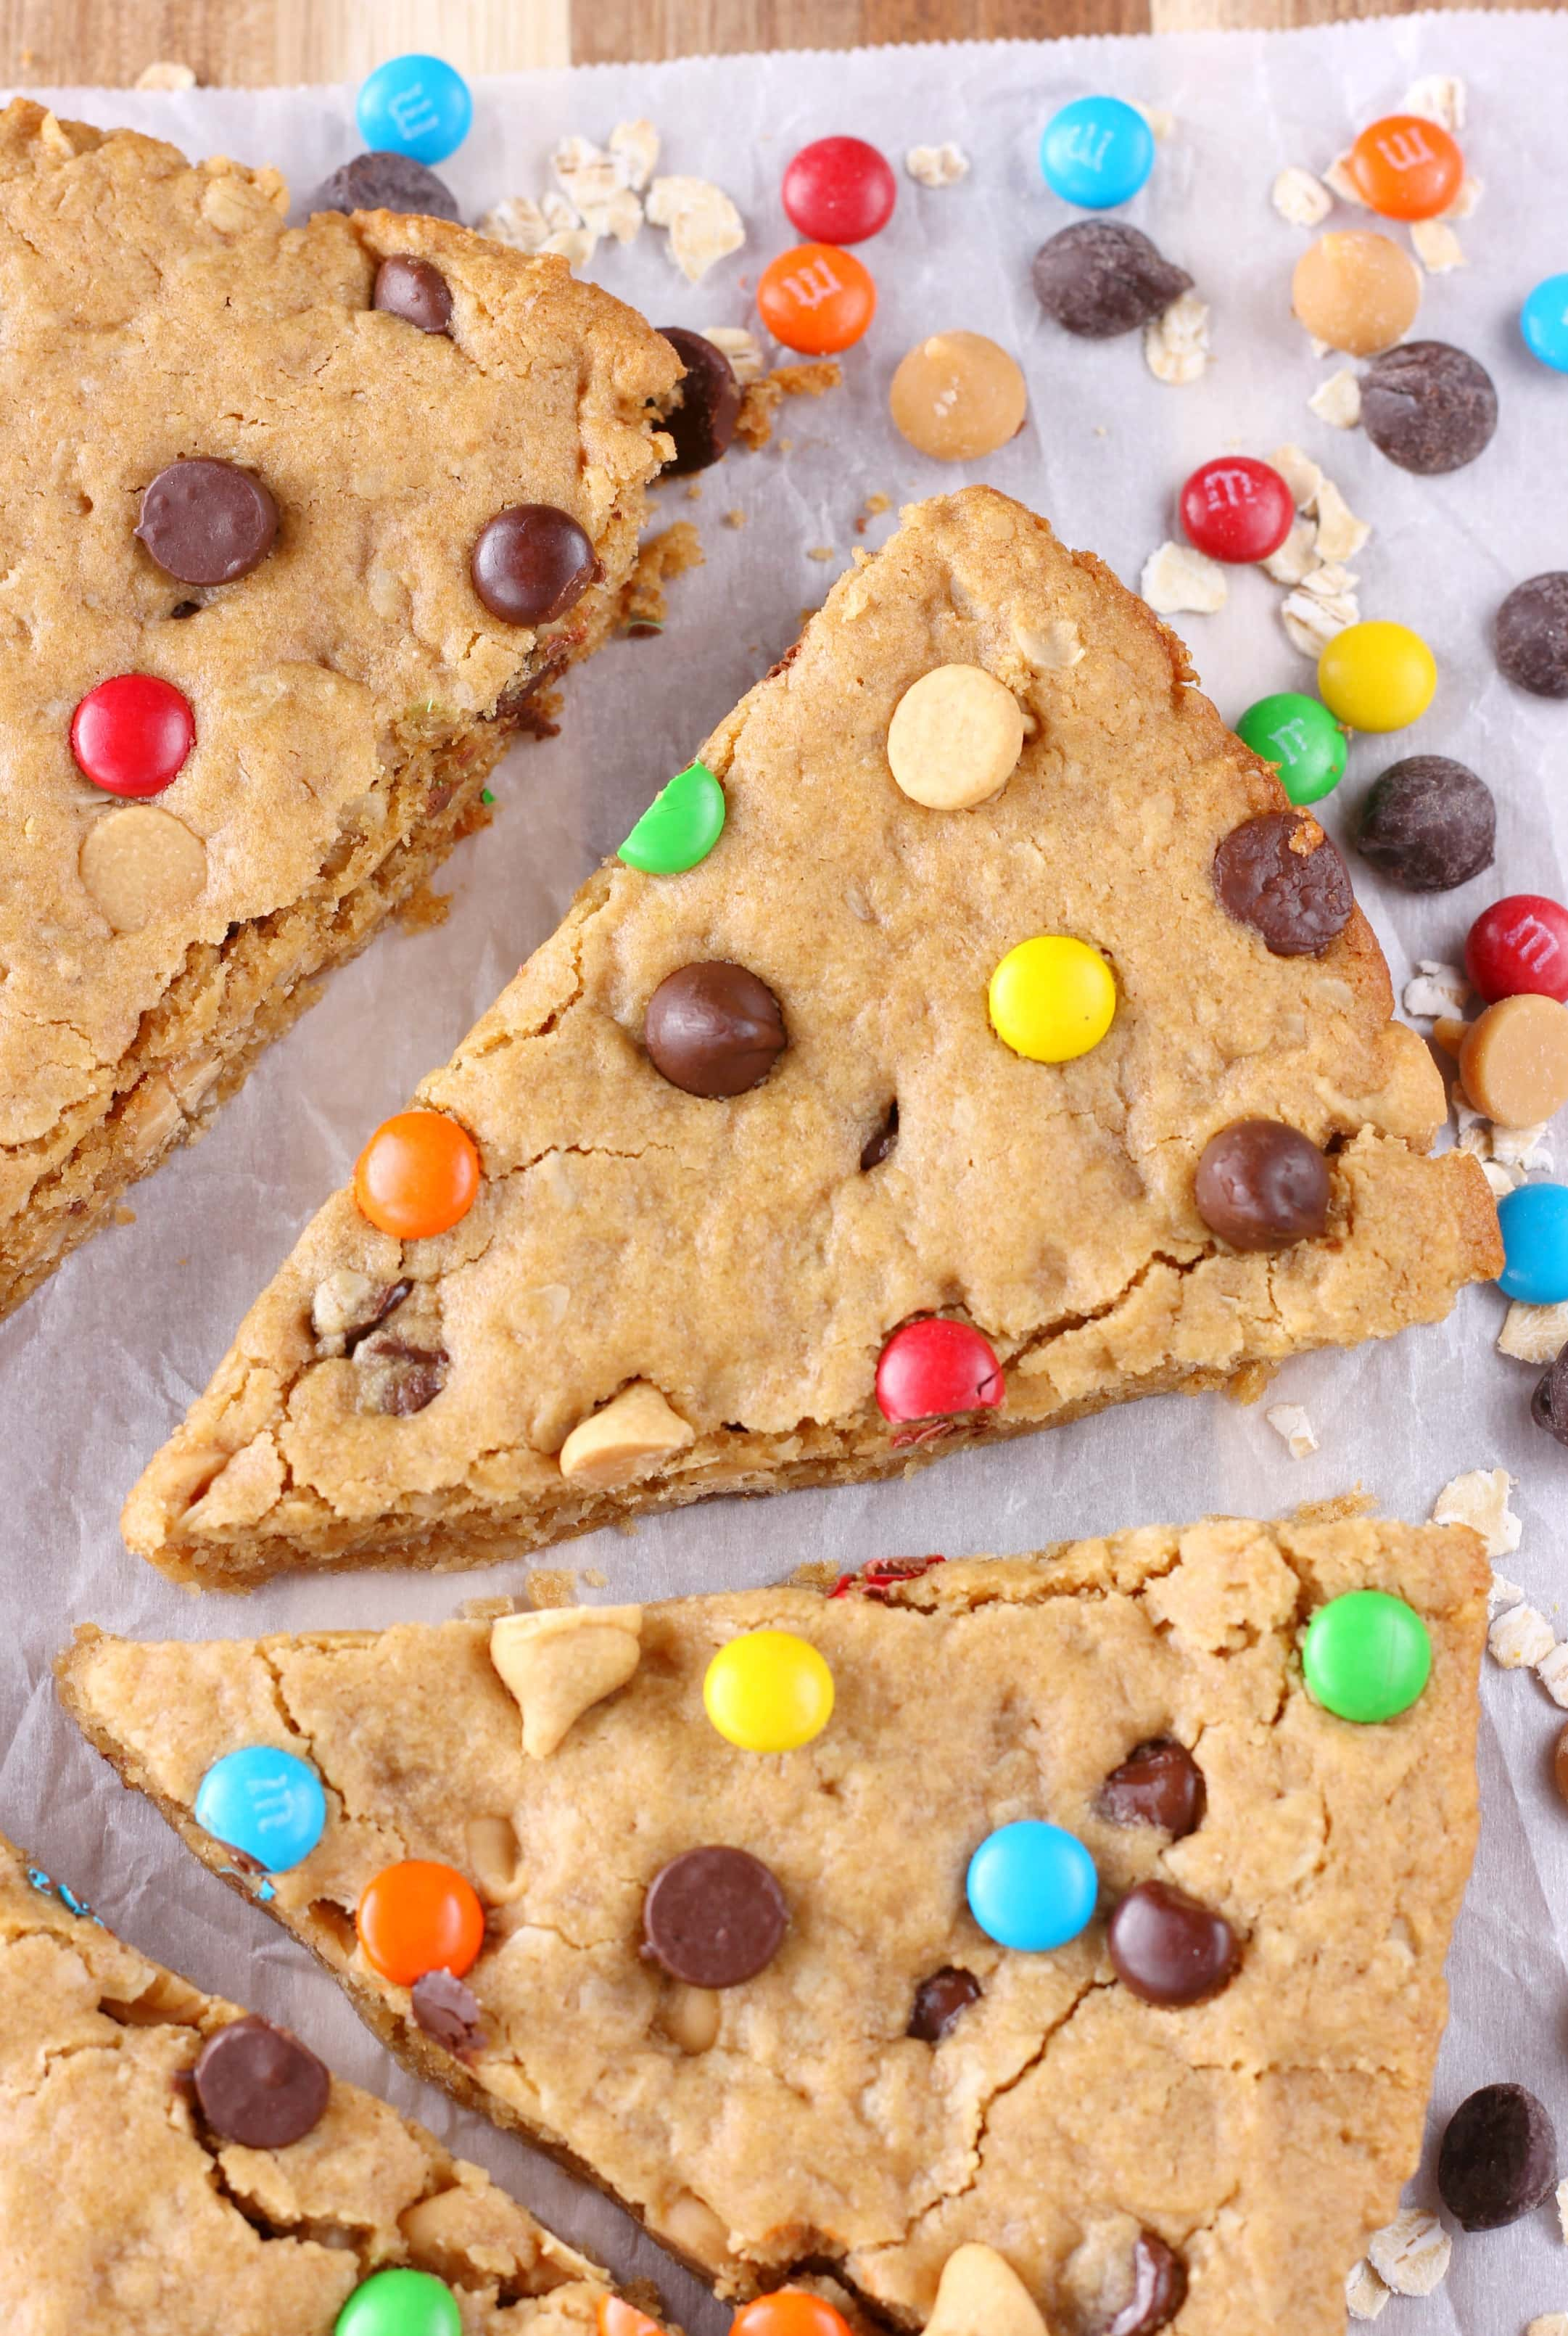 Healthier Chocolate Chip Peanut Butter Oat Cookies Recipe from A Kitchen Addiction